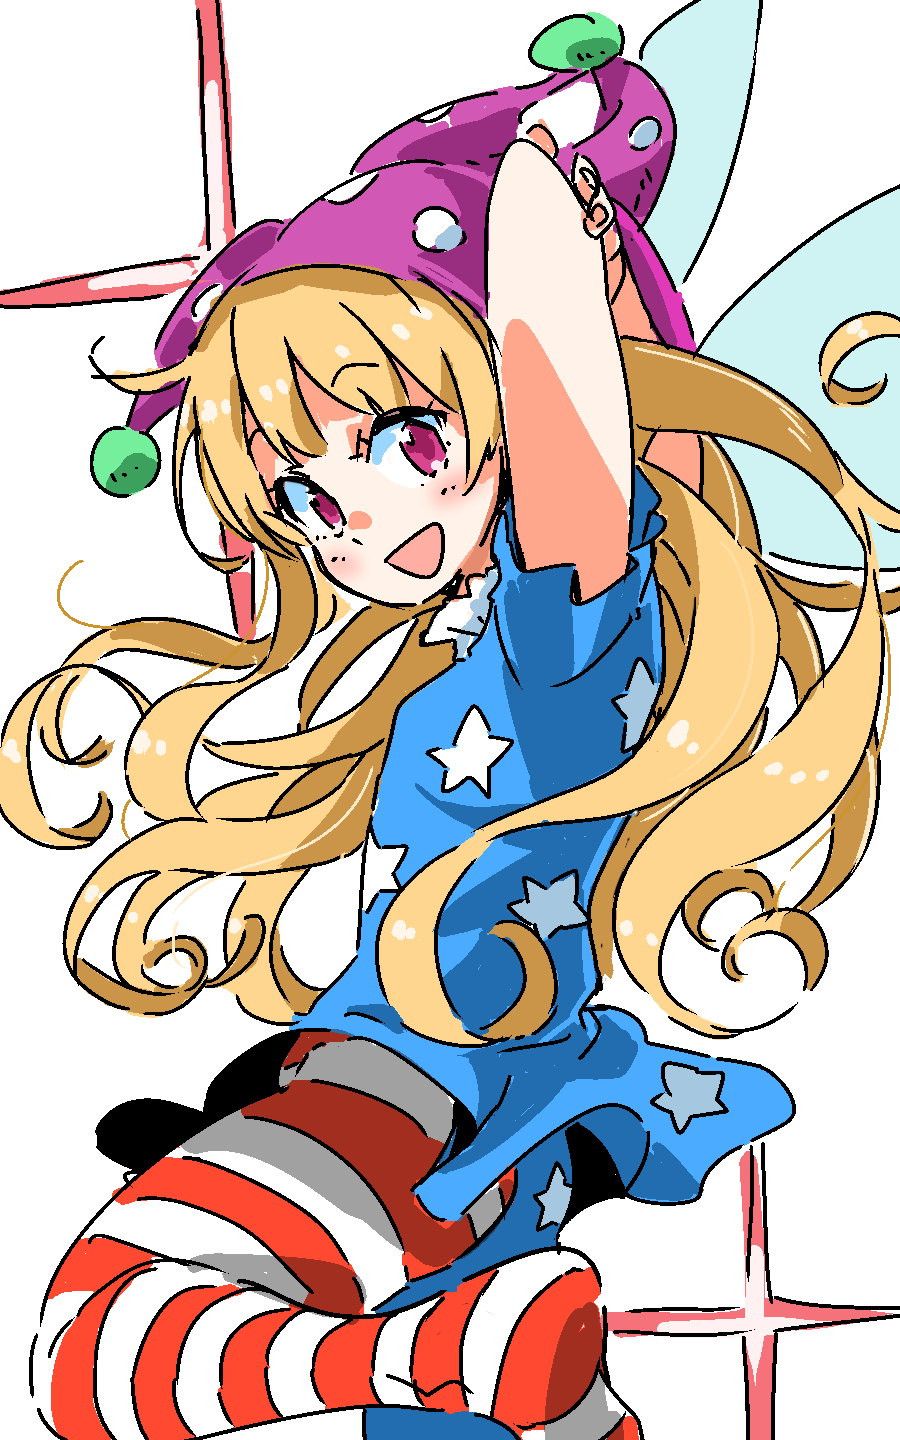 1girl :d american_flag_legwear arms_behind_head arms_up blonde_hair blue_dress blush clownpiece dress eyebrows_visible_through_hair fairy_wings from_side hat highres jester_cap leg_up long_hair looking_to_the_side mismatched_legwear no_shoes open_mouth pink_eyes pink_hat polka_dot_hat print_dress smile solo standing standing_on_one_leg star star_print tareme touhou very_long_hair wings zk_(zk_gundan)